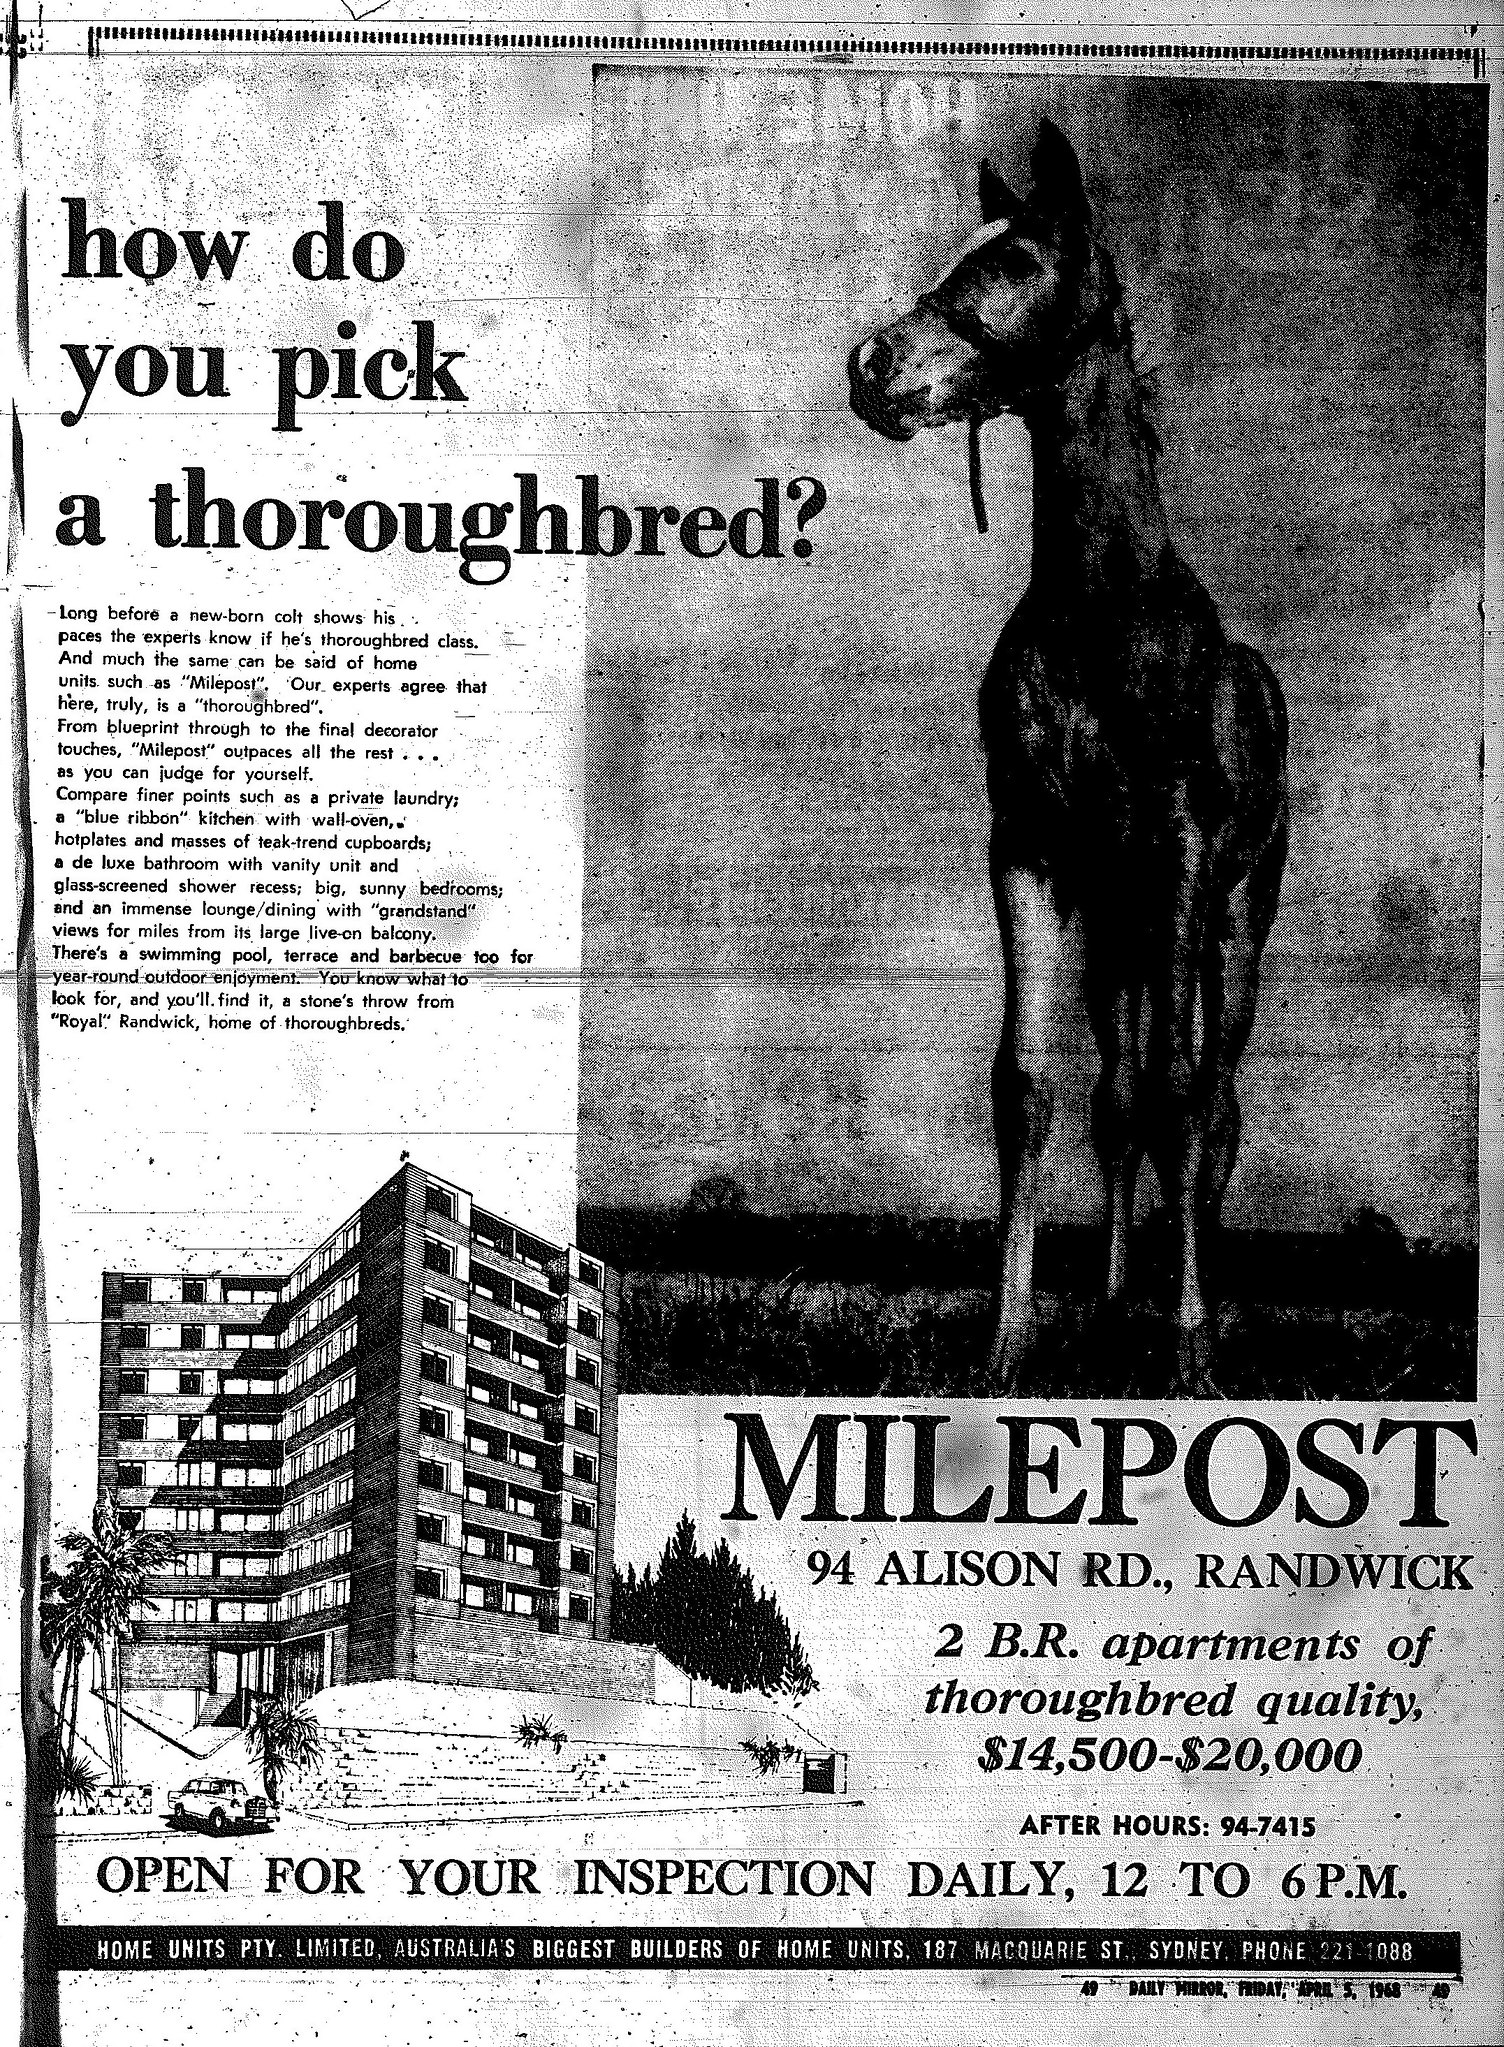 milepost randwick april 5 1968 daily mirror 49